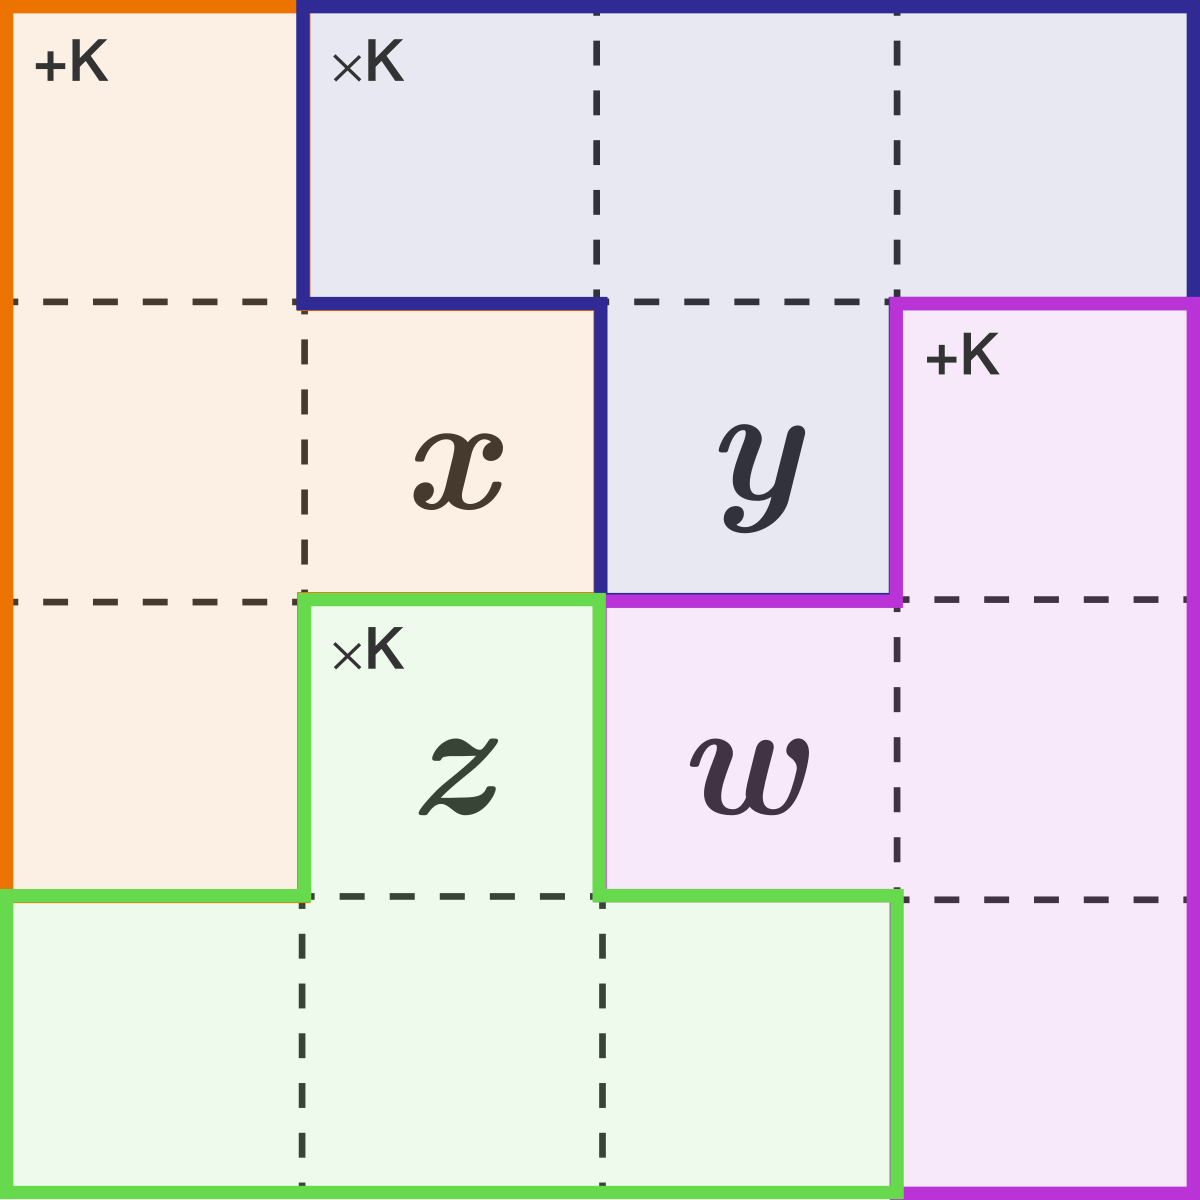 4-by-4 puzzle, consisting of 4 Tetrominoes!